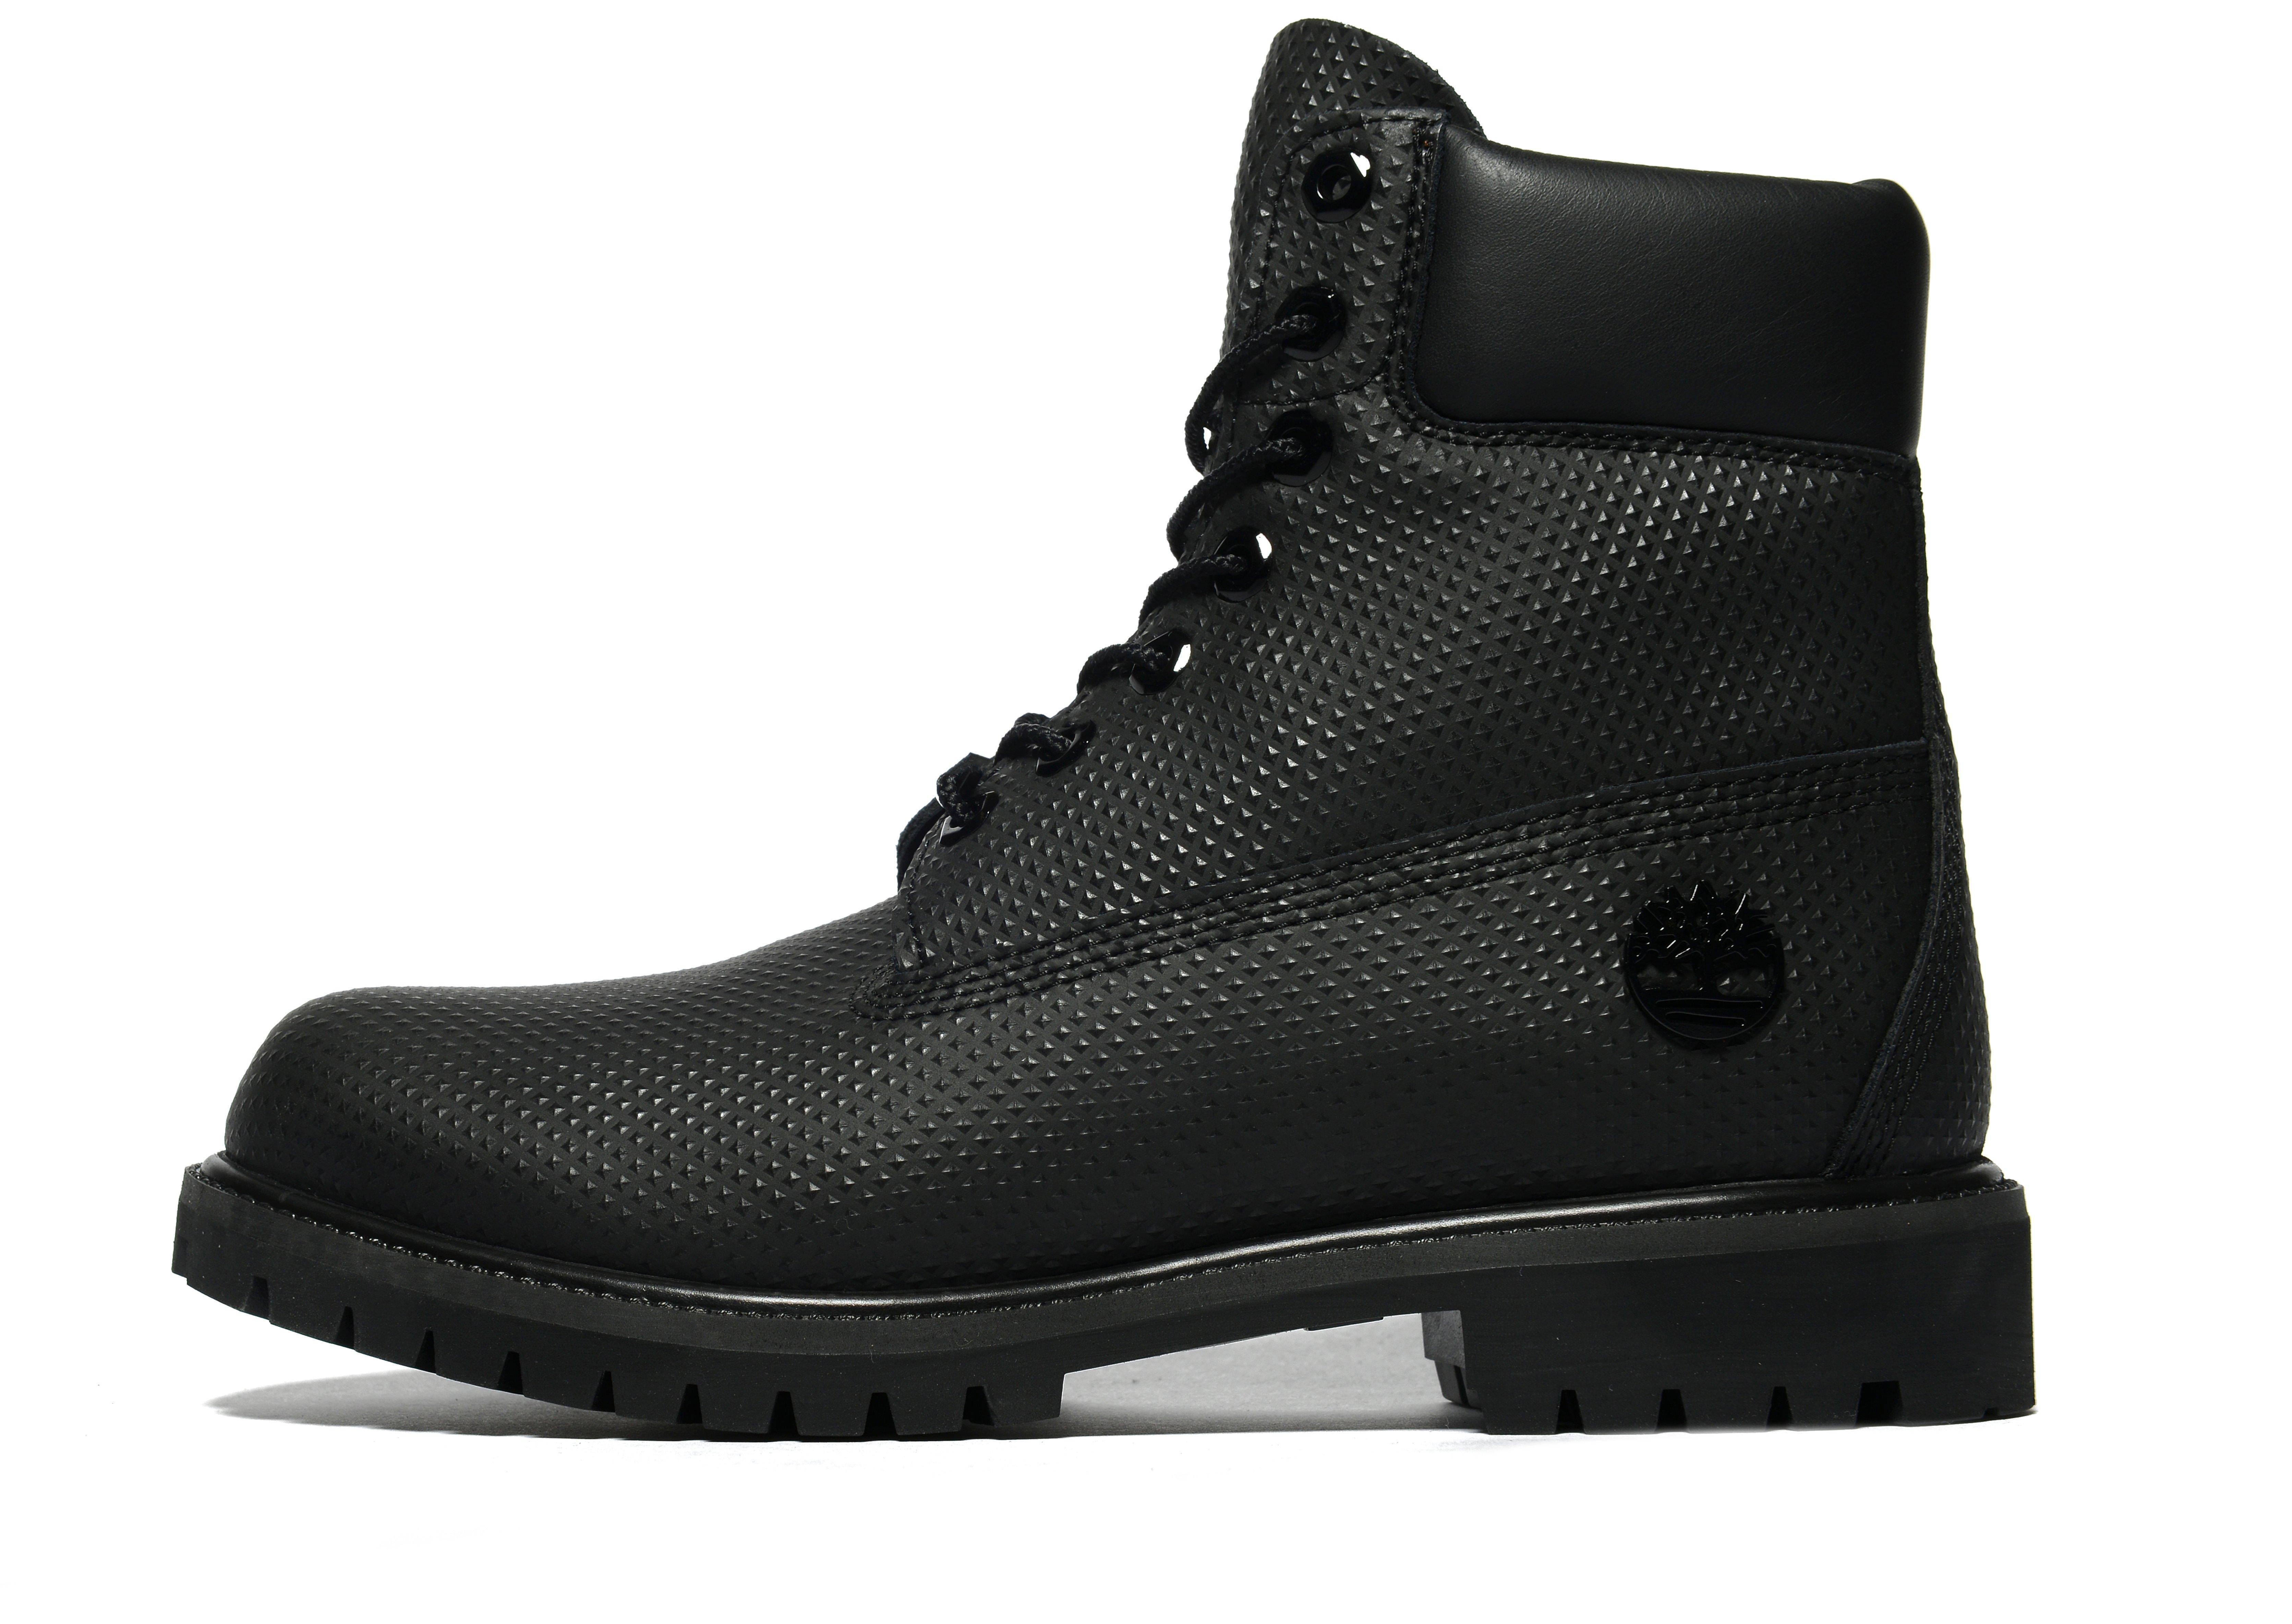 lyst timberland 6 inch premium helcor boot in black for men. Black Bedroom Furniture Sets. Home Design Ideas